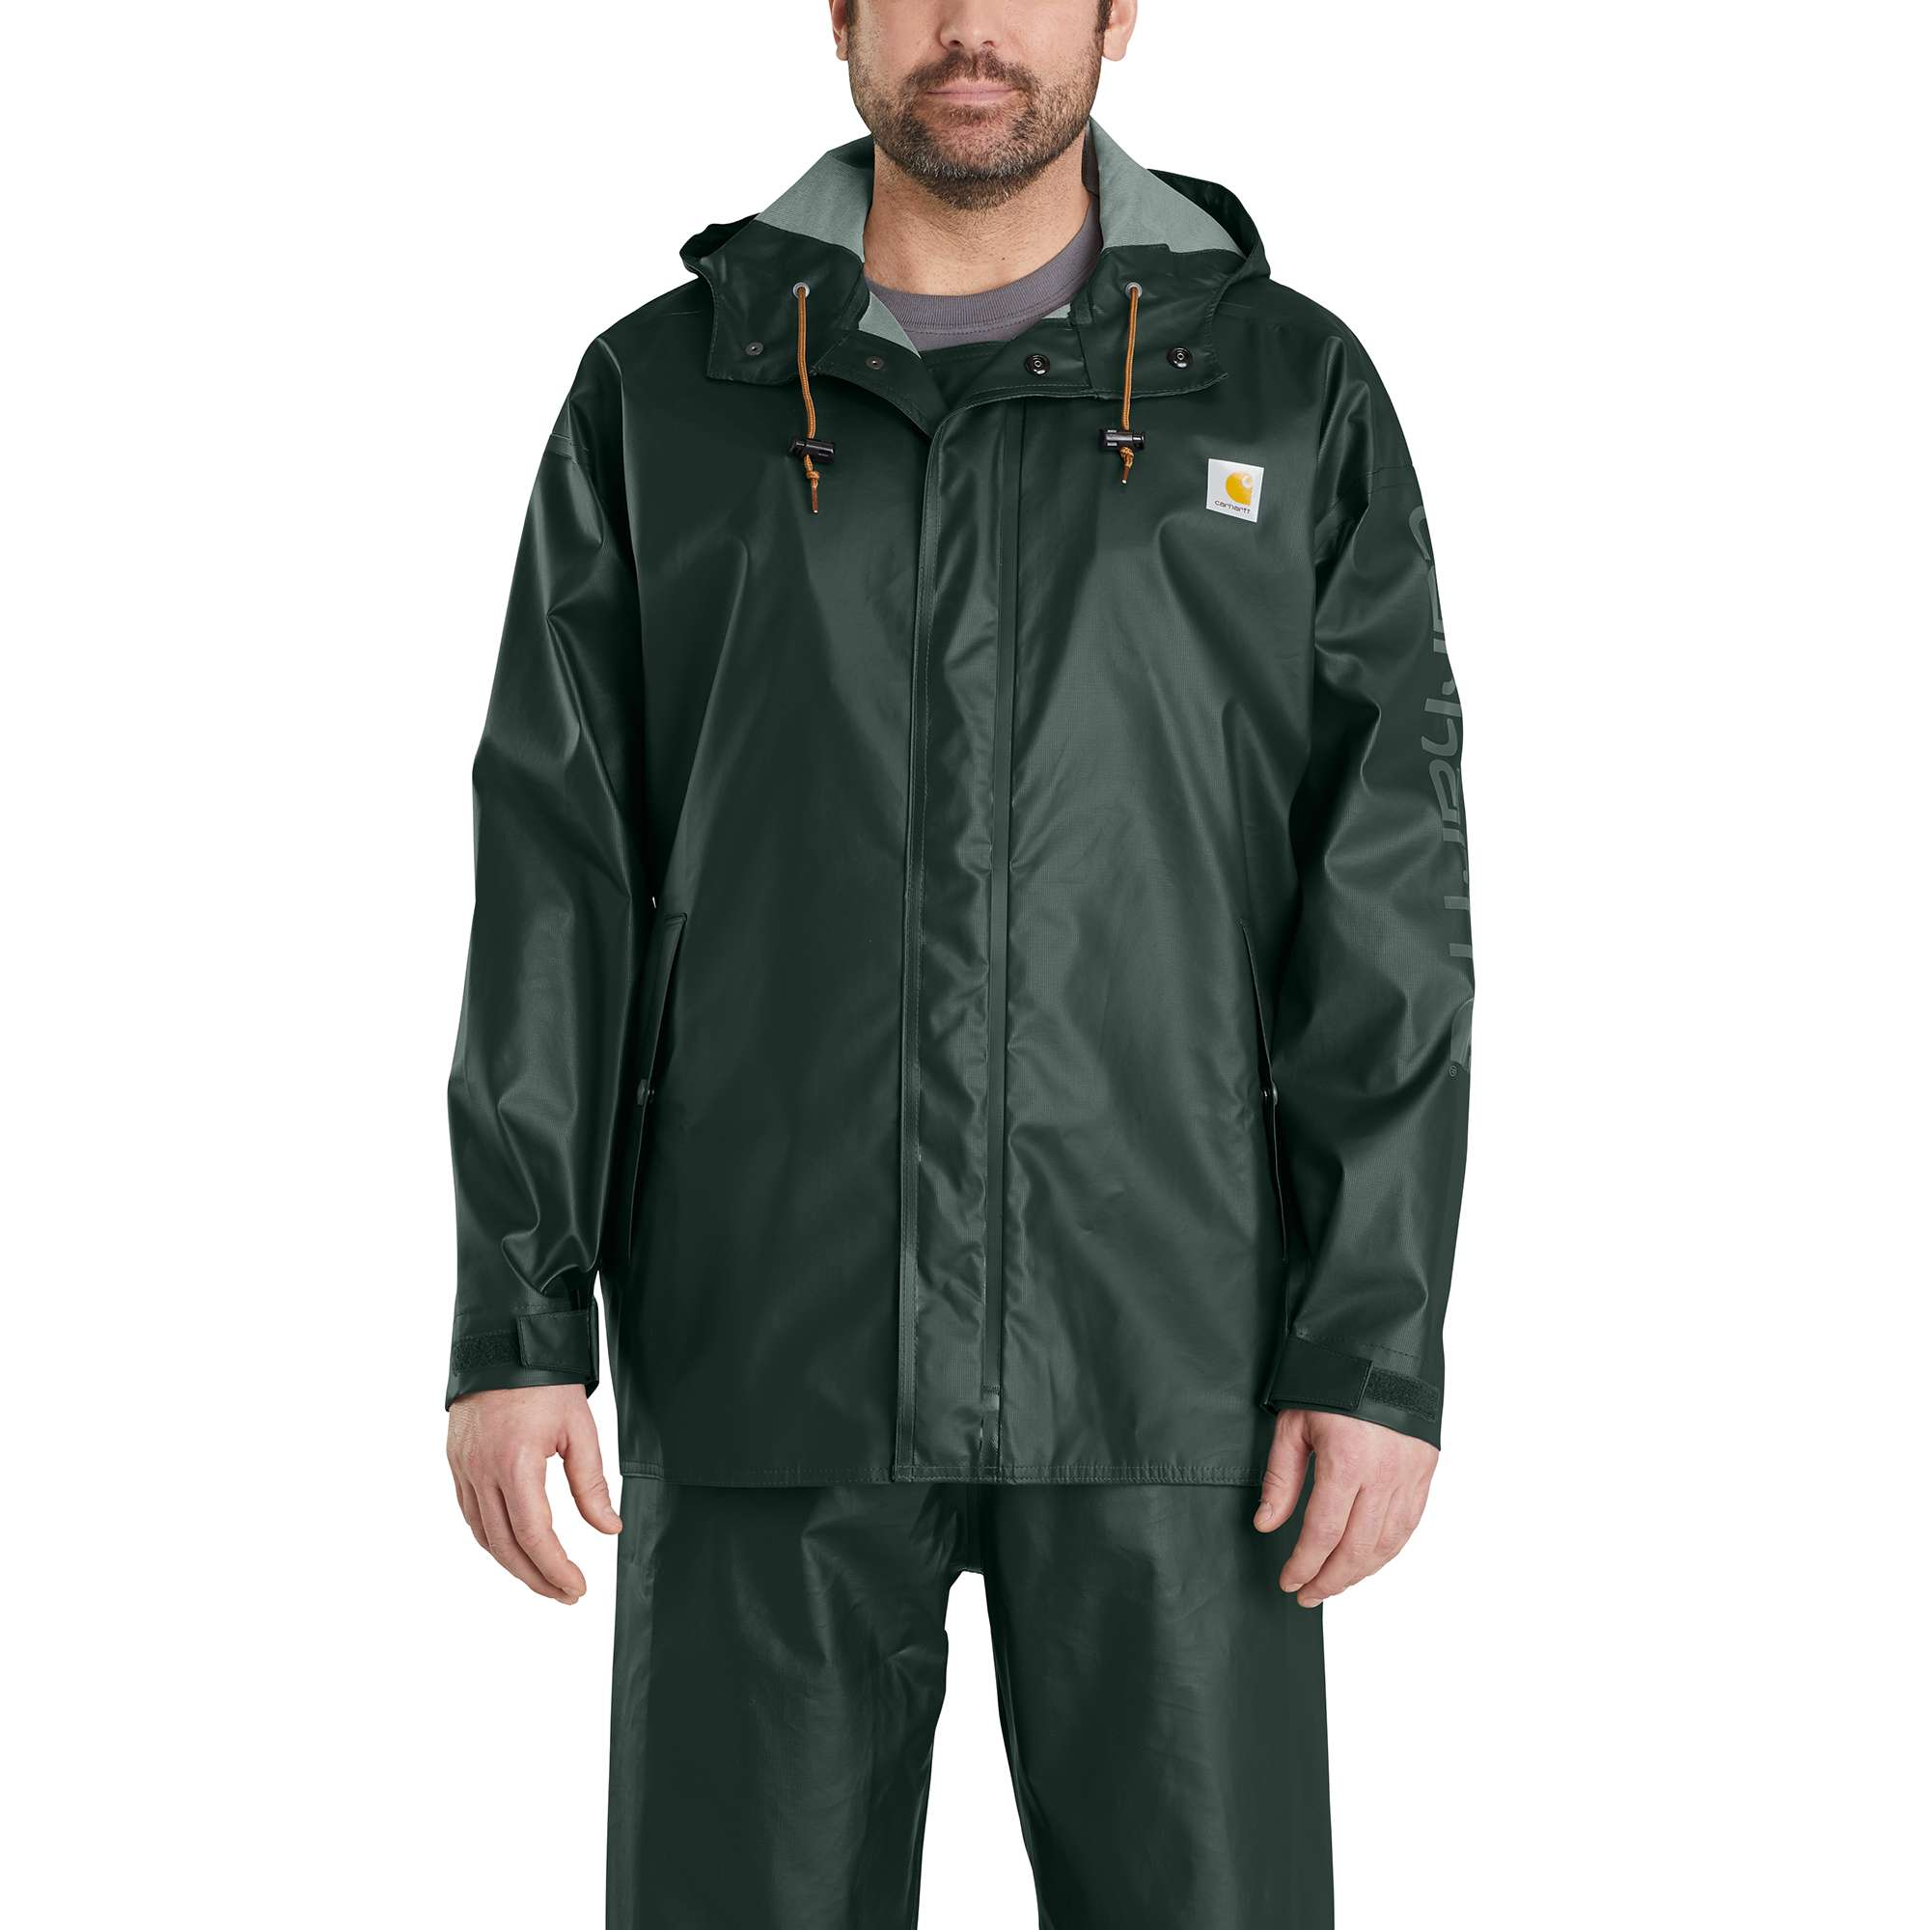 Carhartt Lightweight Waterproof Rainstorm Jacket